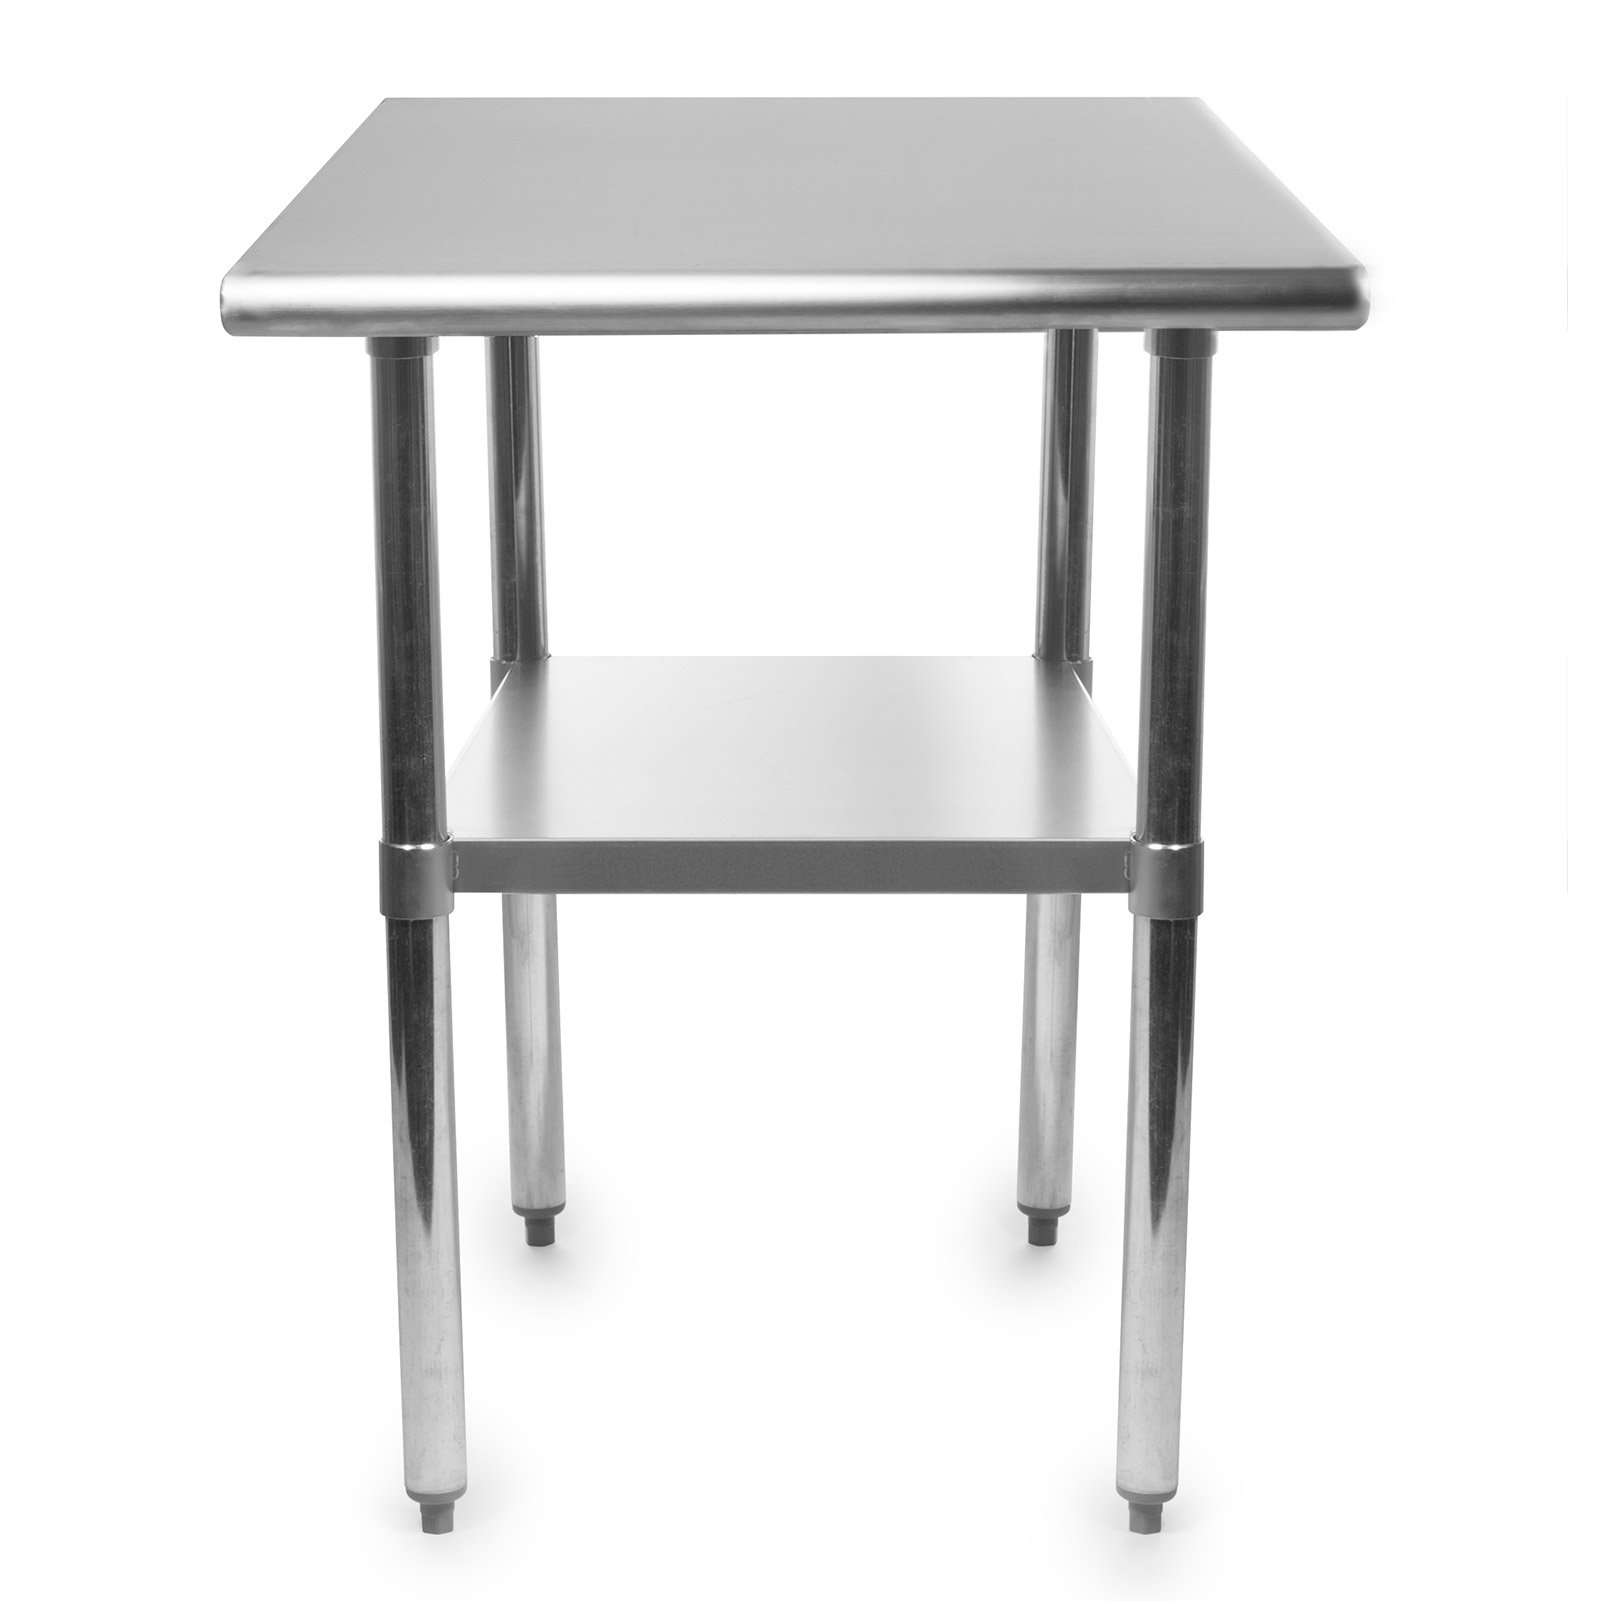 Gridmann NSF Stainless Steel Commercial Kitchen Prep & Work Table - 30 in. x 24 in. by Gridmann (Image #1)